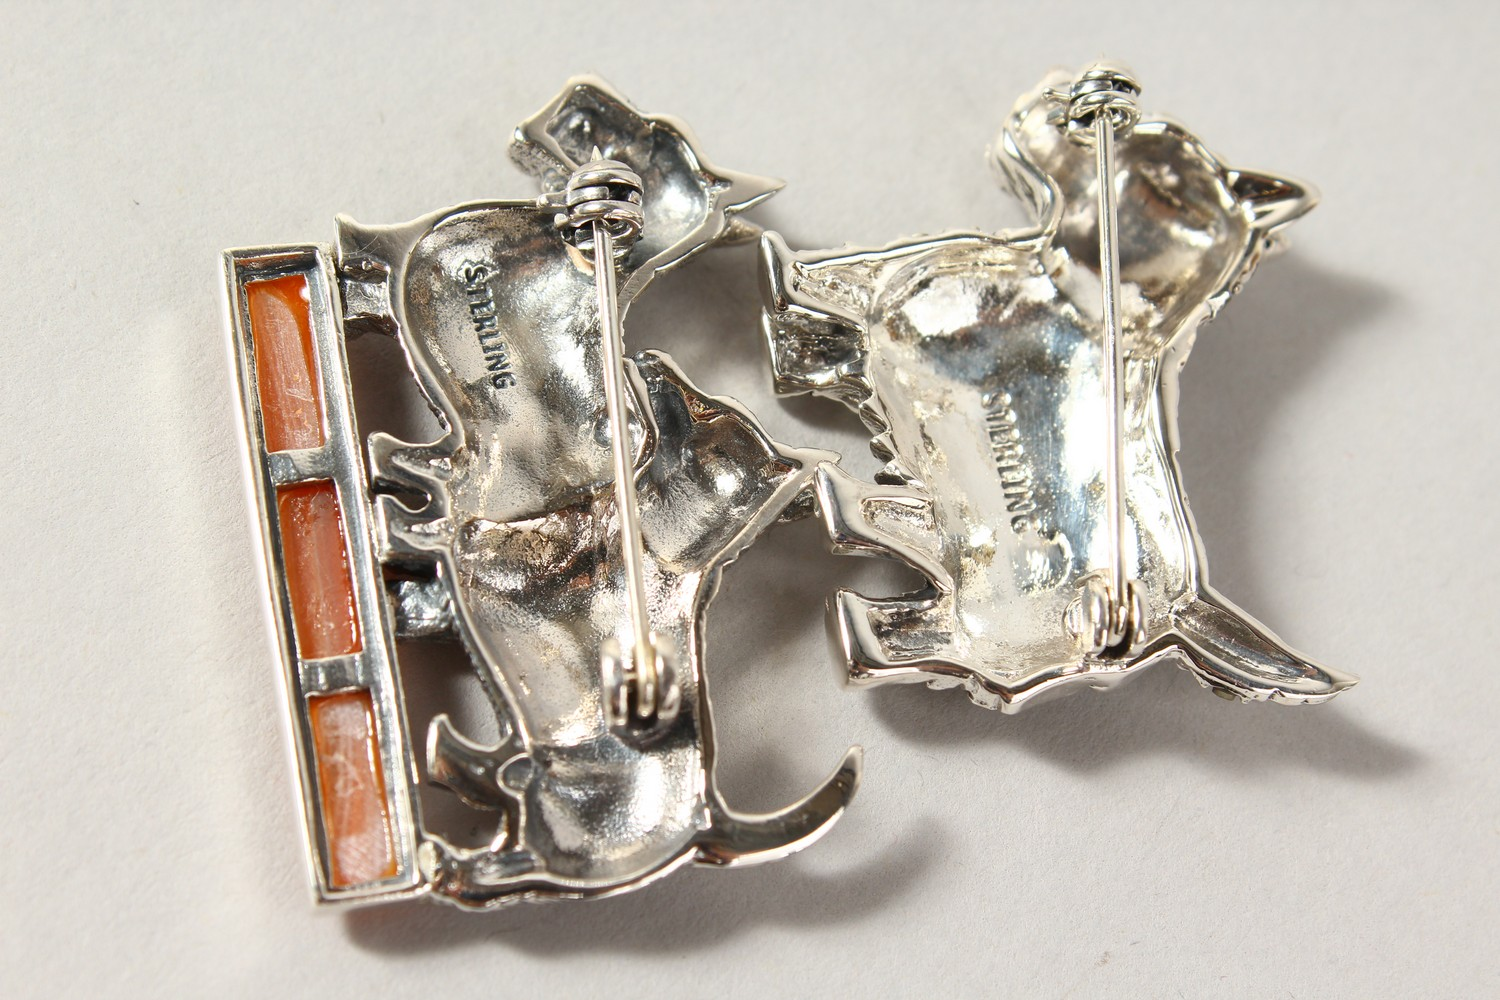 Lot 1642 - TWO NOVELTY SILVER SCOTTIE DOG BROOCHES.